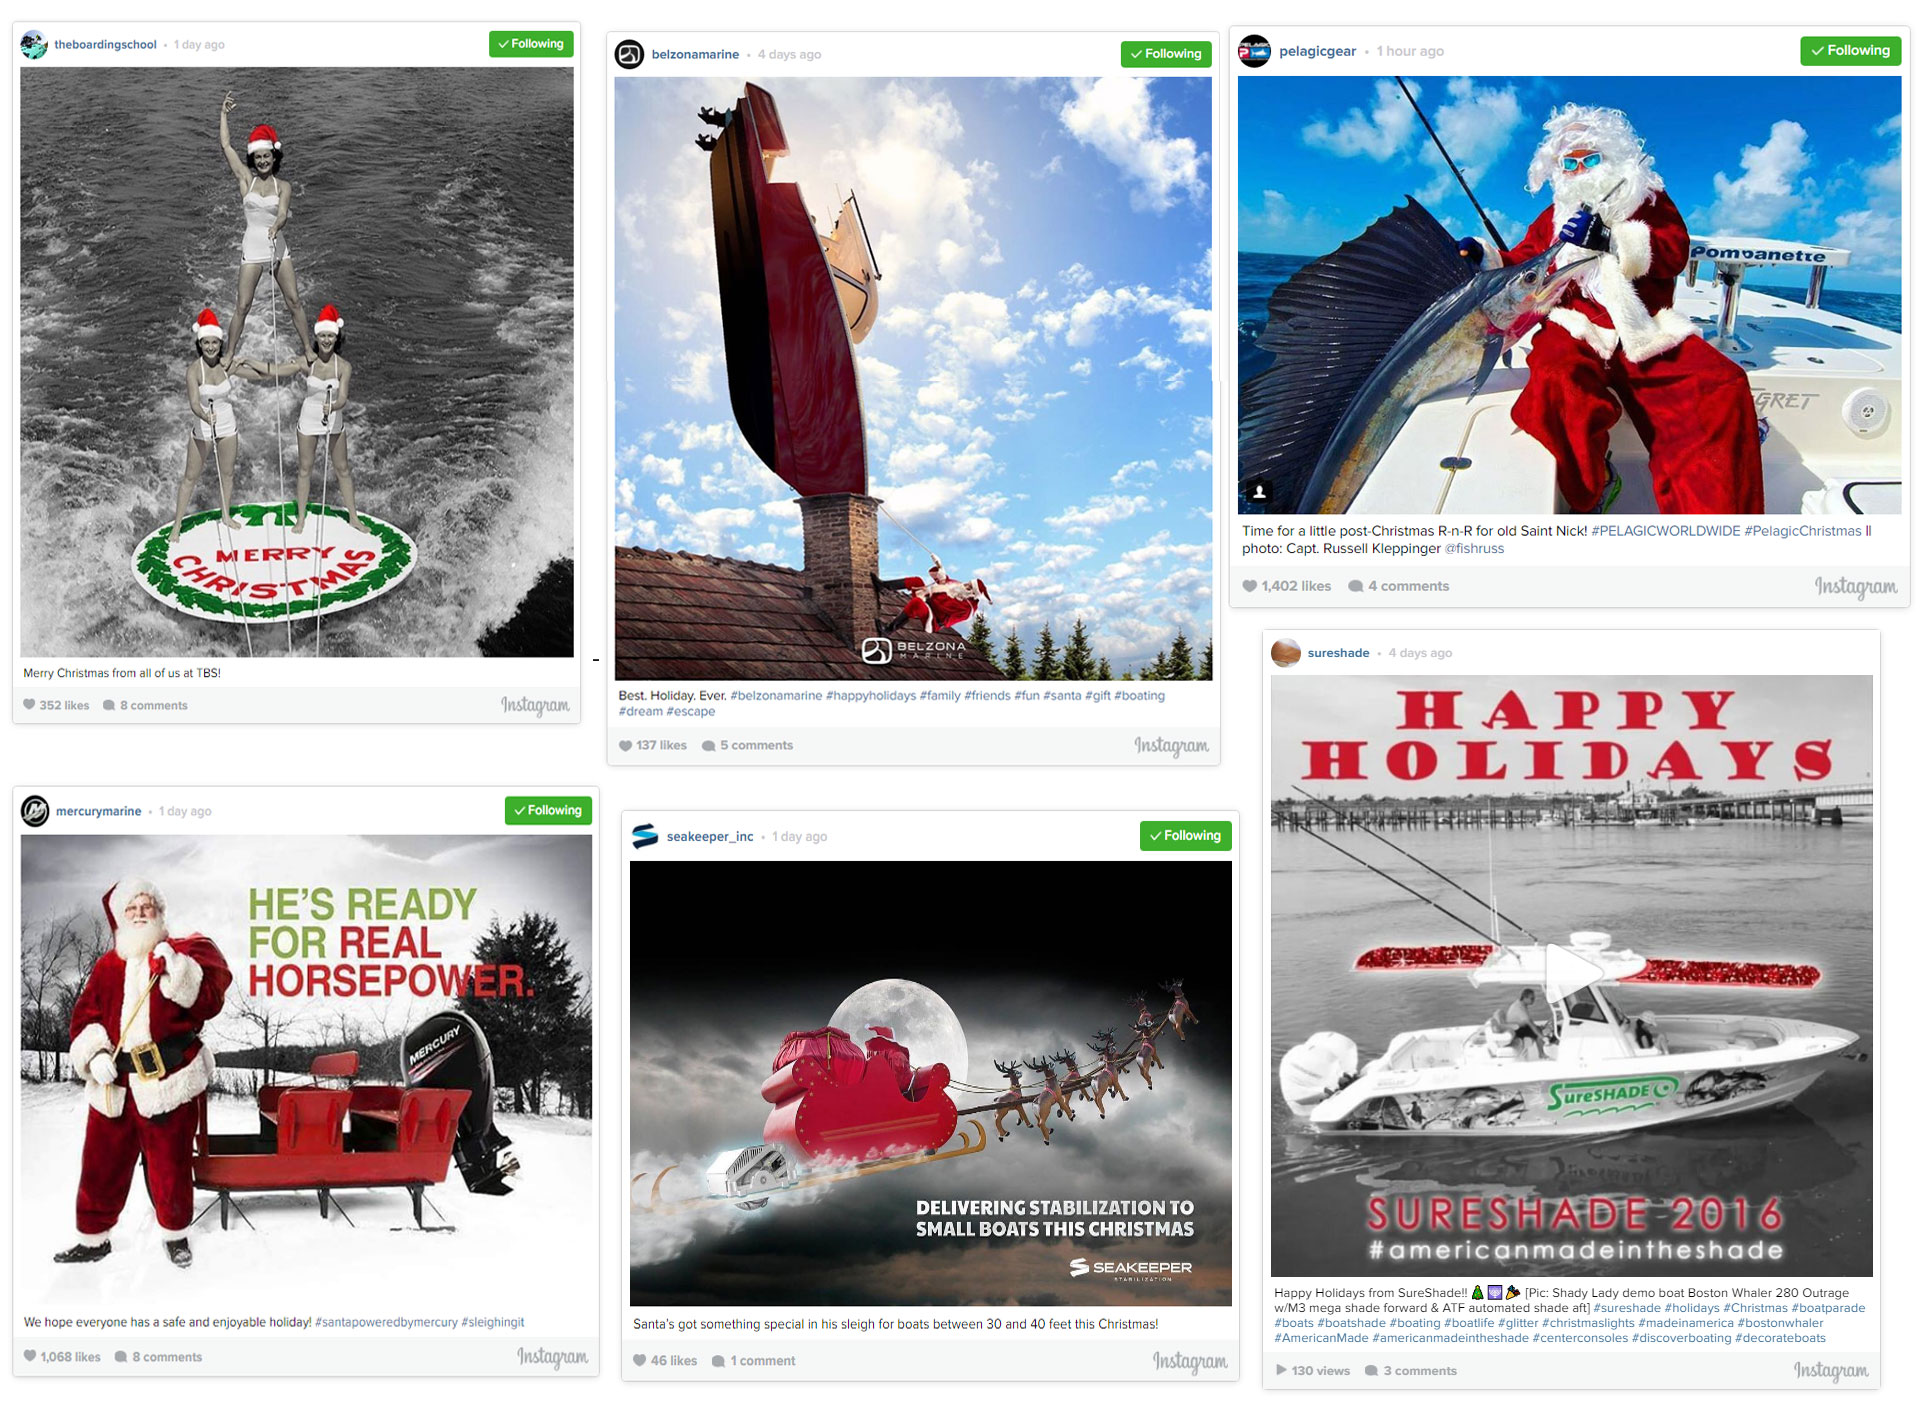 holiday boating posts instagram